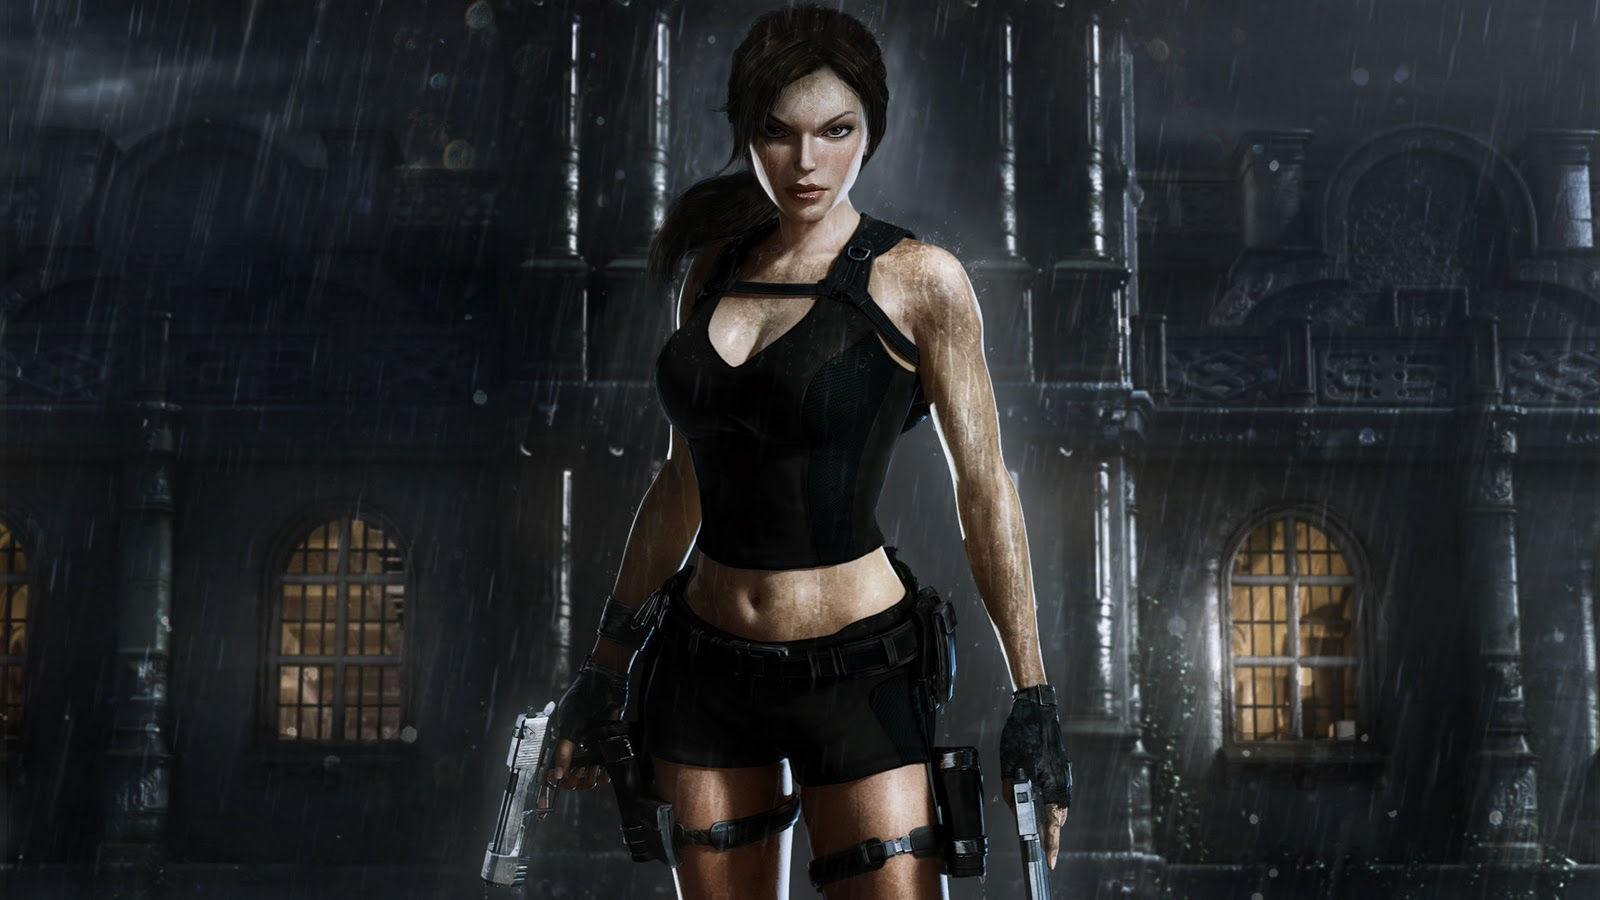 http://3.bp.blogspot.com/-lswd1TzKTOc/Tw6DD5-HF7I/AAAAAAAAAdU/CDbhZMCByKQ/s1600/Tomb-Raider-Wallpaper-1080p-HD-Resolution.jpg